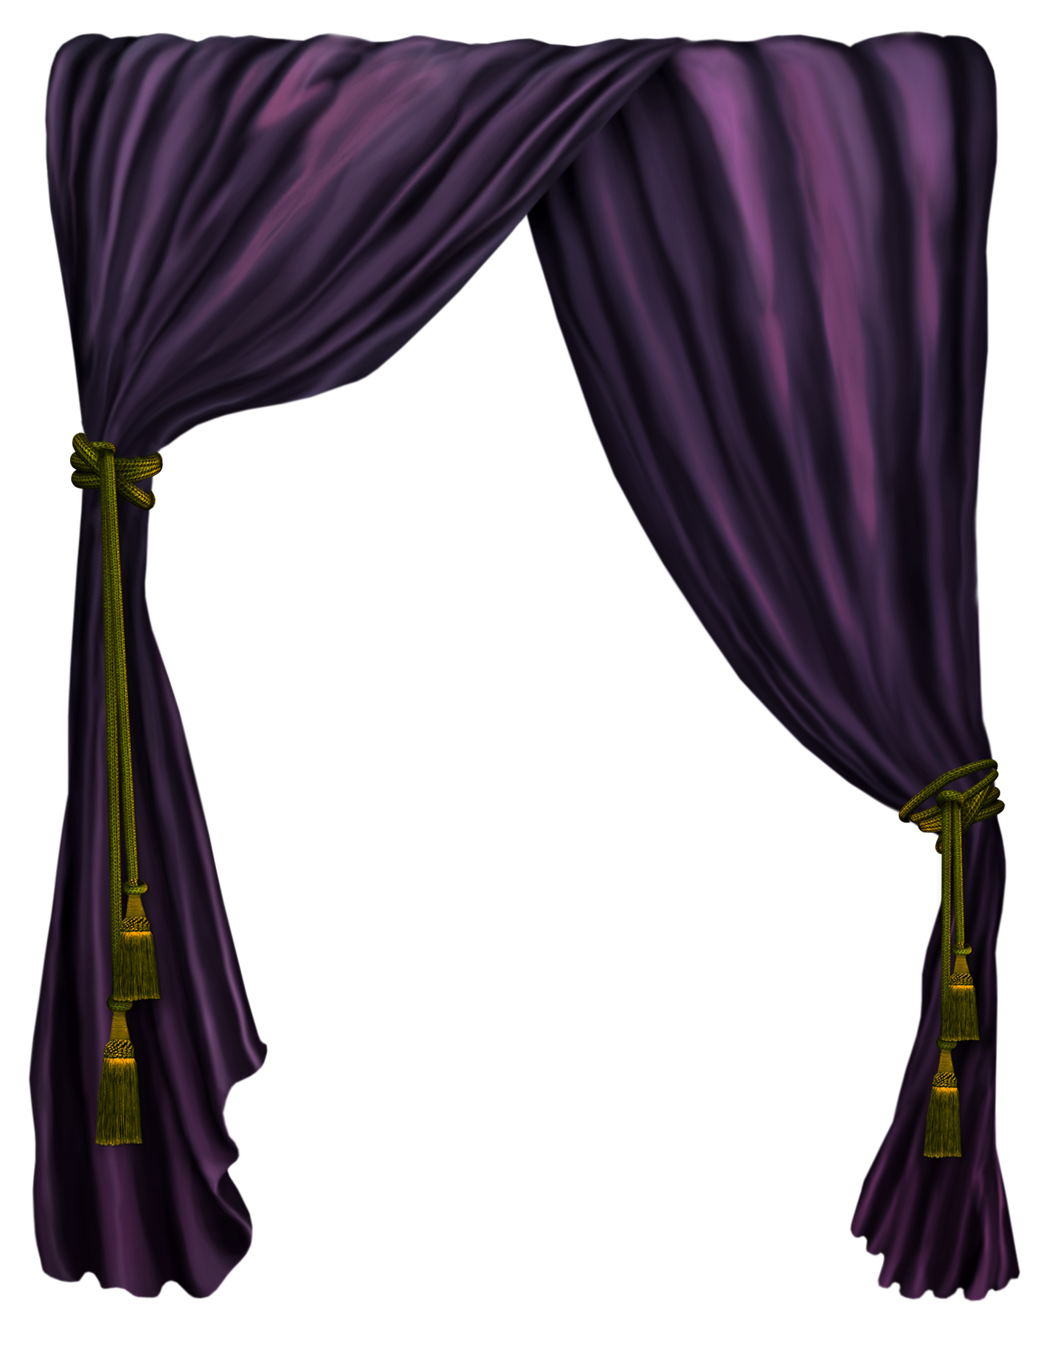 Silk curtain png. Purple decor clipart picture